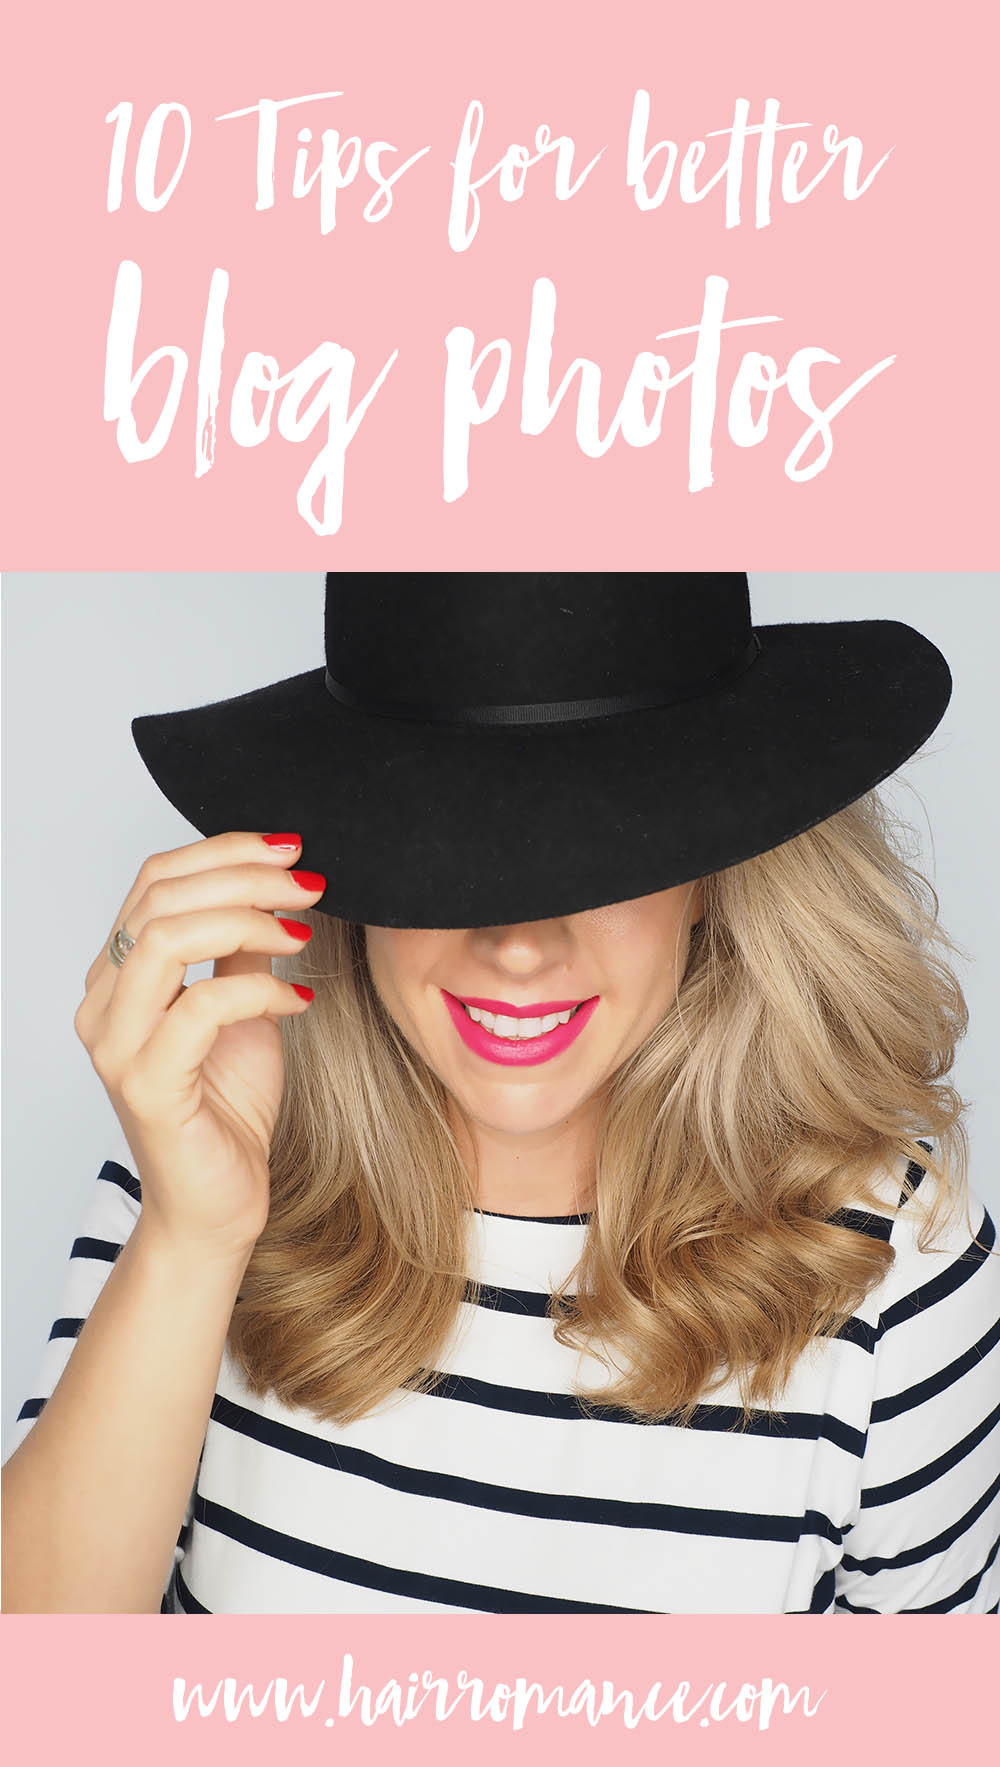 Hair Romance - 10 tips for better blog photos